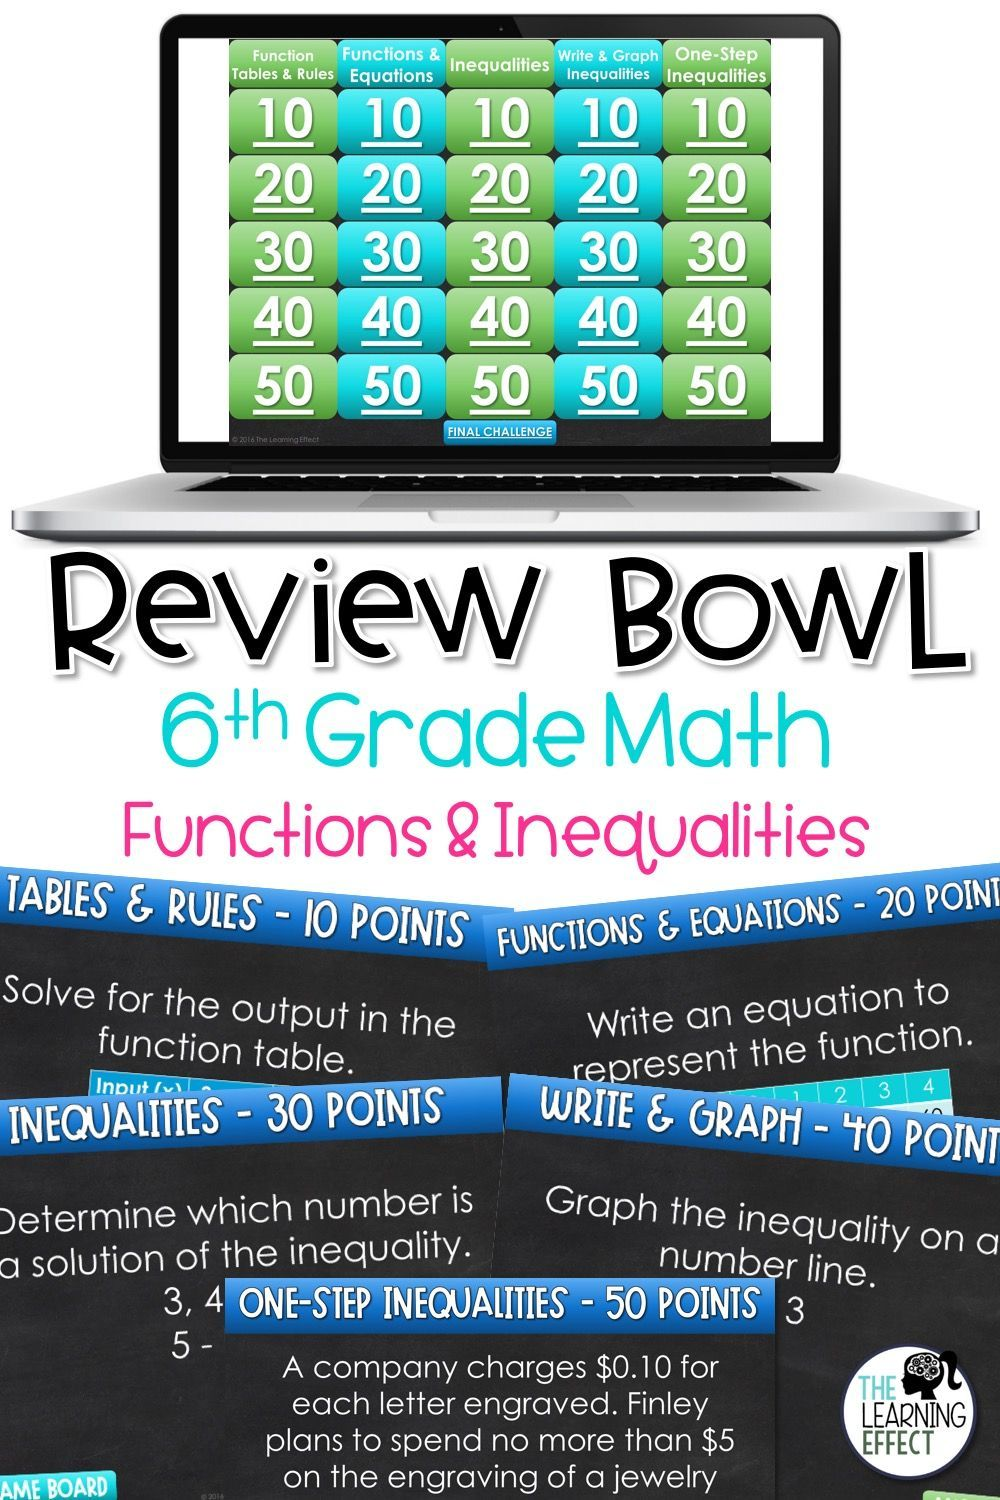 Functions and inequalities game show 6th grade